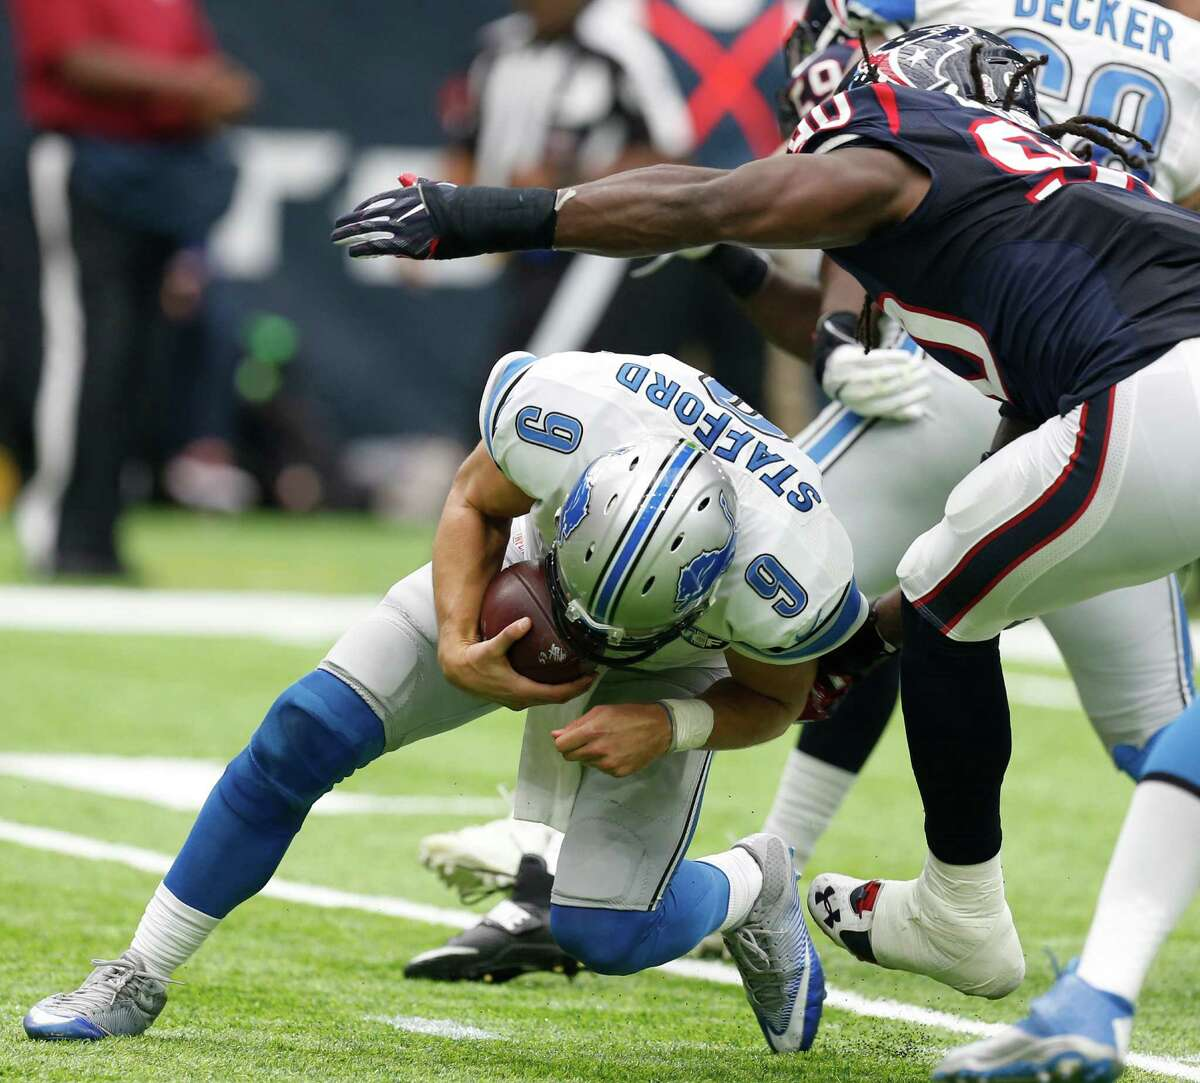 The Lions' Matthew Stafford (9) is sacked by Texans defensive end Jadeveon Clowney (90) during the second quarter. It was the only sack of the game for the Texans.